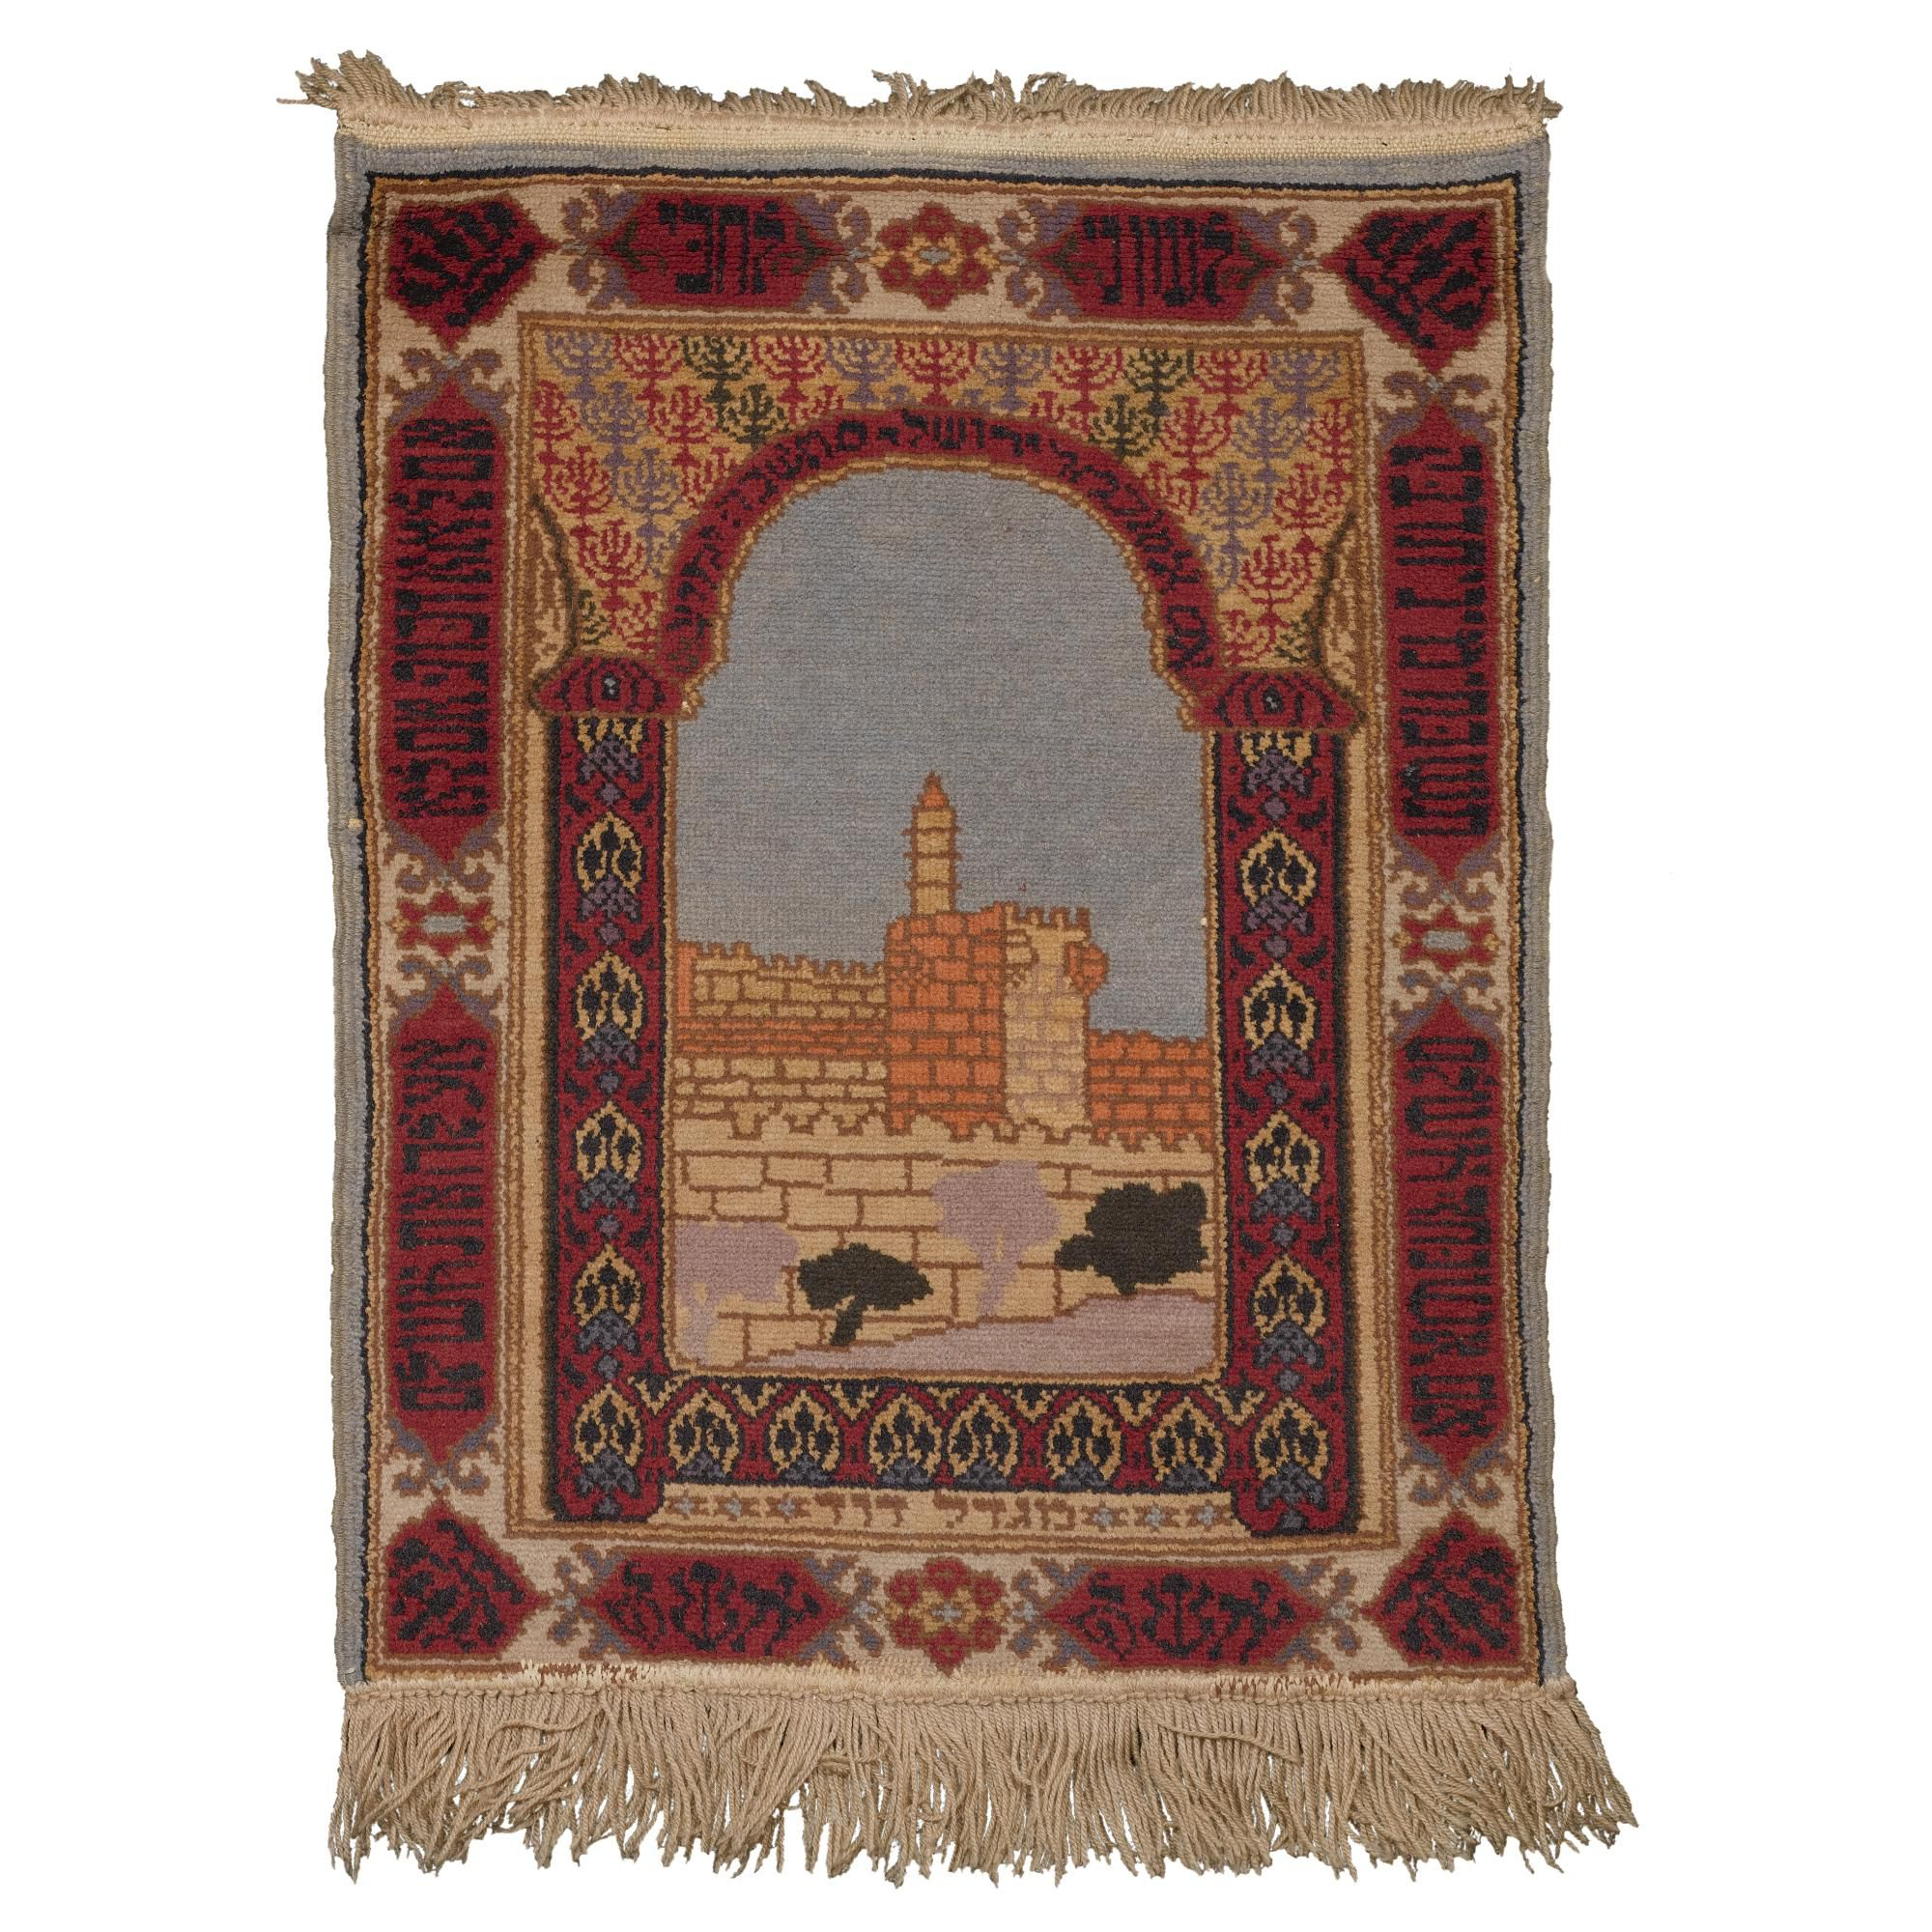 123 Property From The Collection Of Anton Felton A Marbadiah Wool Rug Jerusalem 1920 S Centered With A Depiction Of Th Jewish Art Romantic Art Art Exhibition